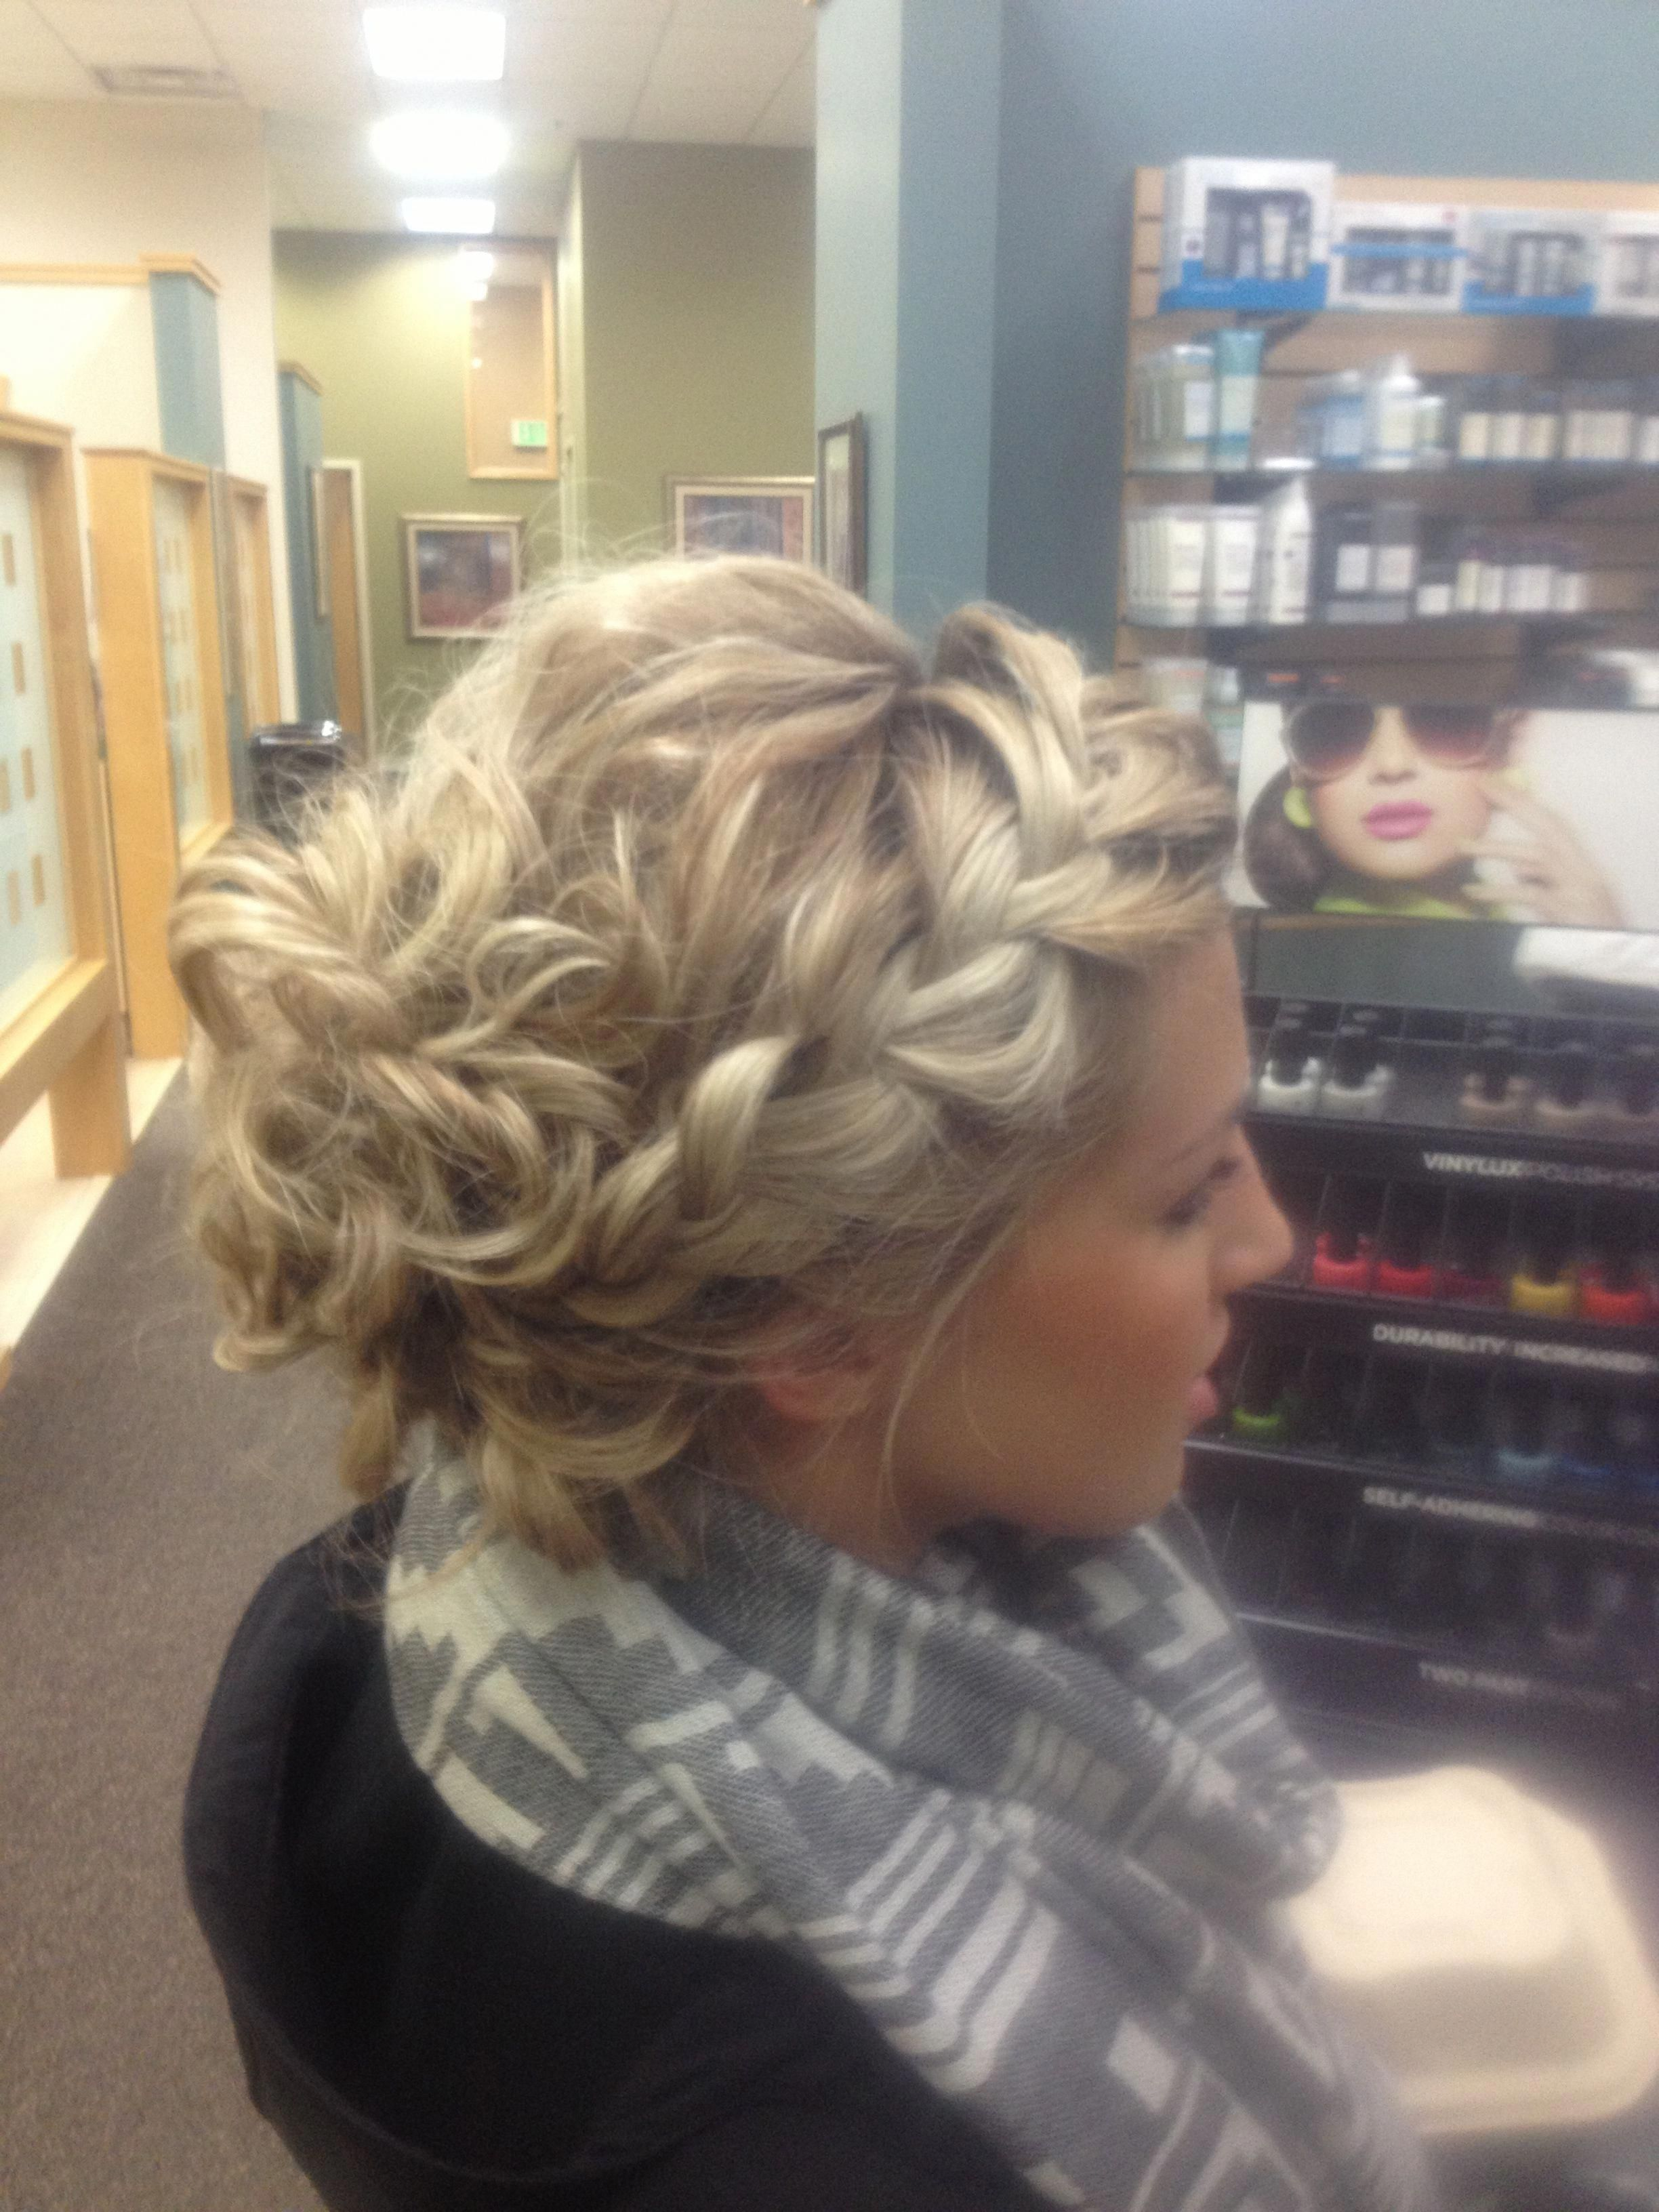 Braided Updo Really Wish My Hair Would Do Stuff Like This Braidedupdo Hair Styles Braided Hairstyles Updo Hairstyle